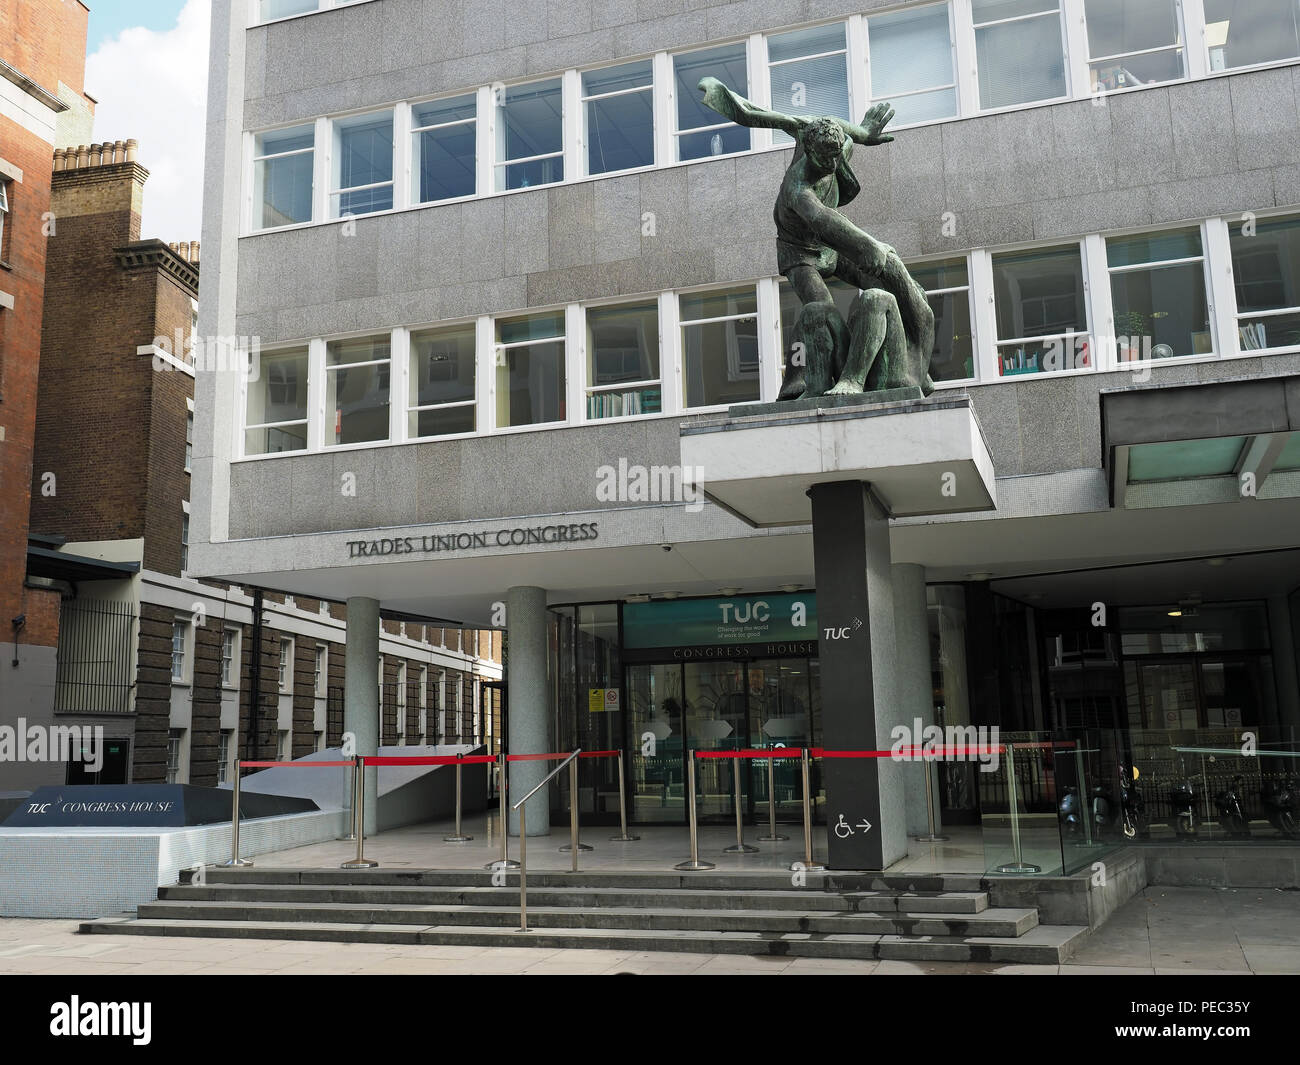 Front view of Congress House the headquarters of the Trades Union Congress (TUC) in Great Russell Street London - Stock Image